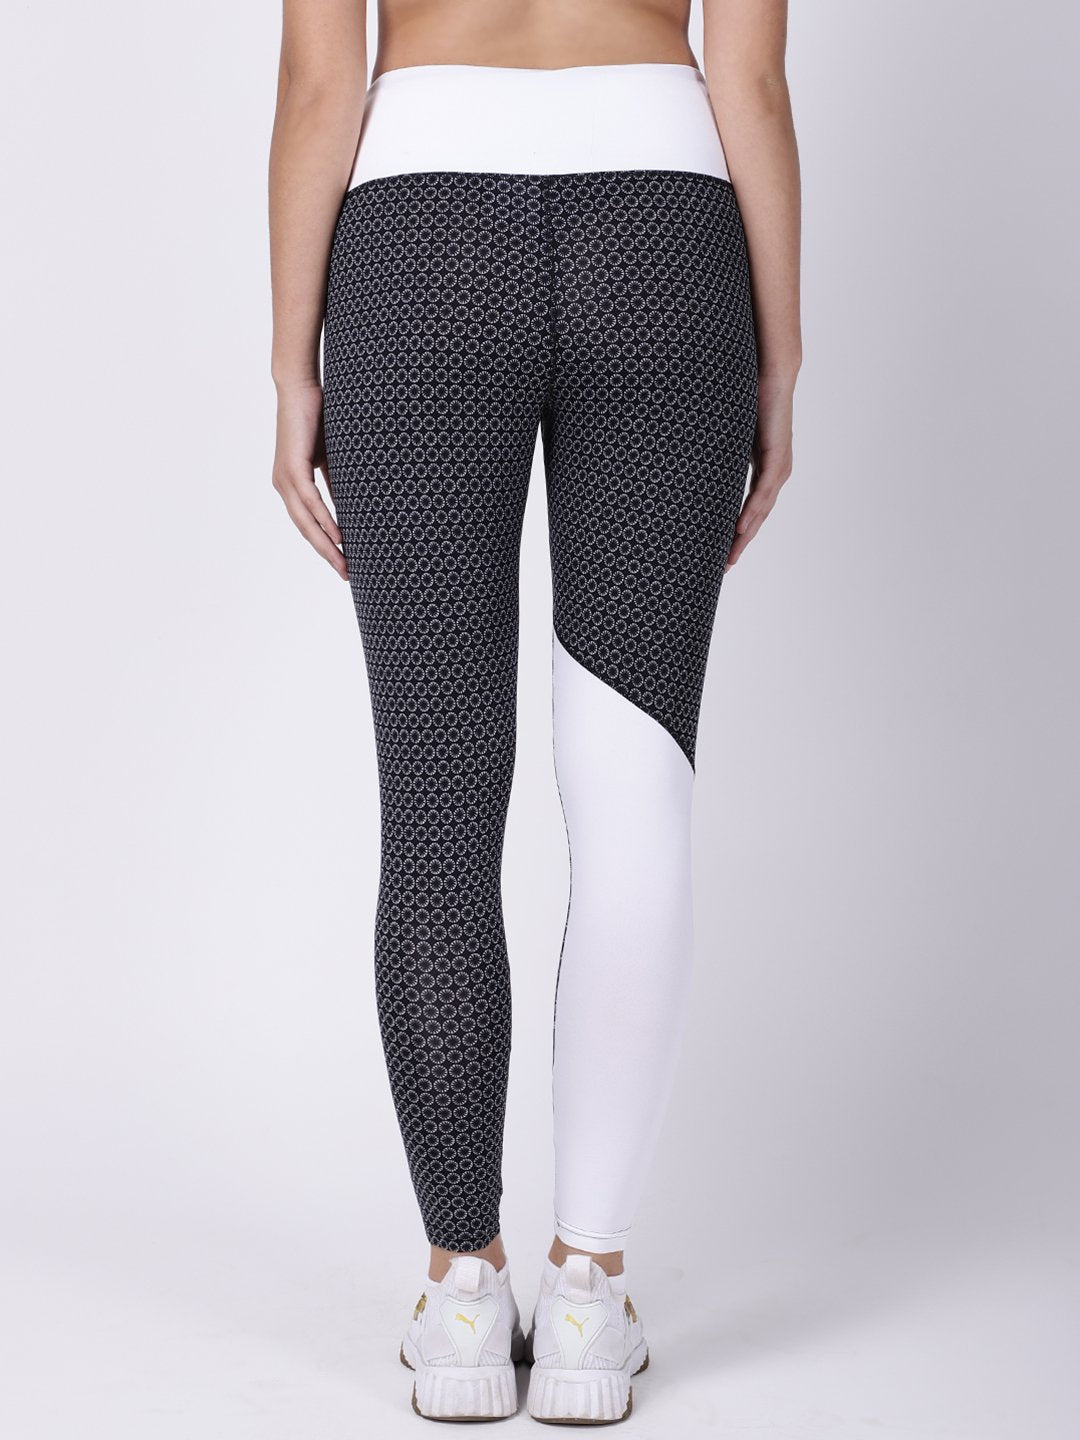 Black White Printed Roadrunner Leggings